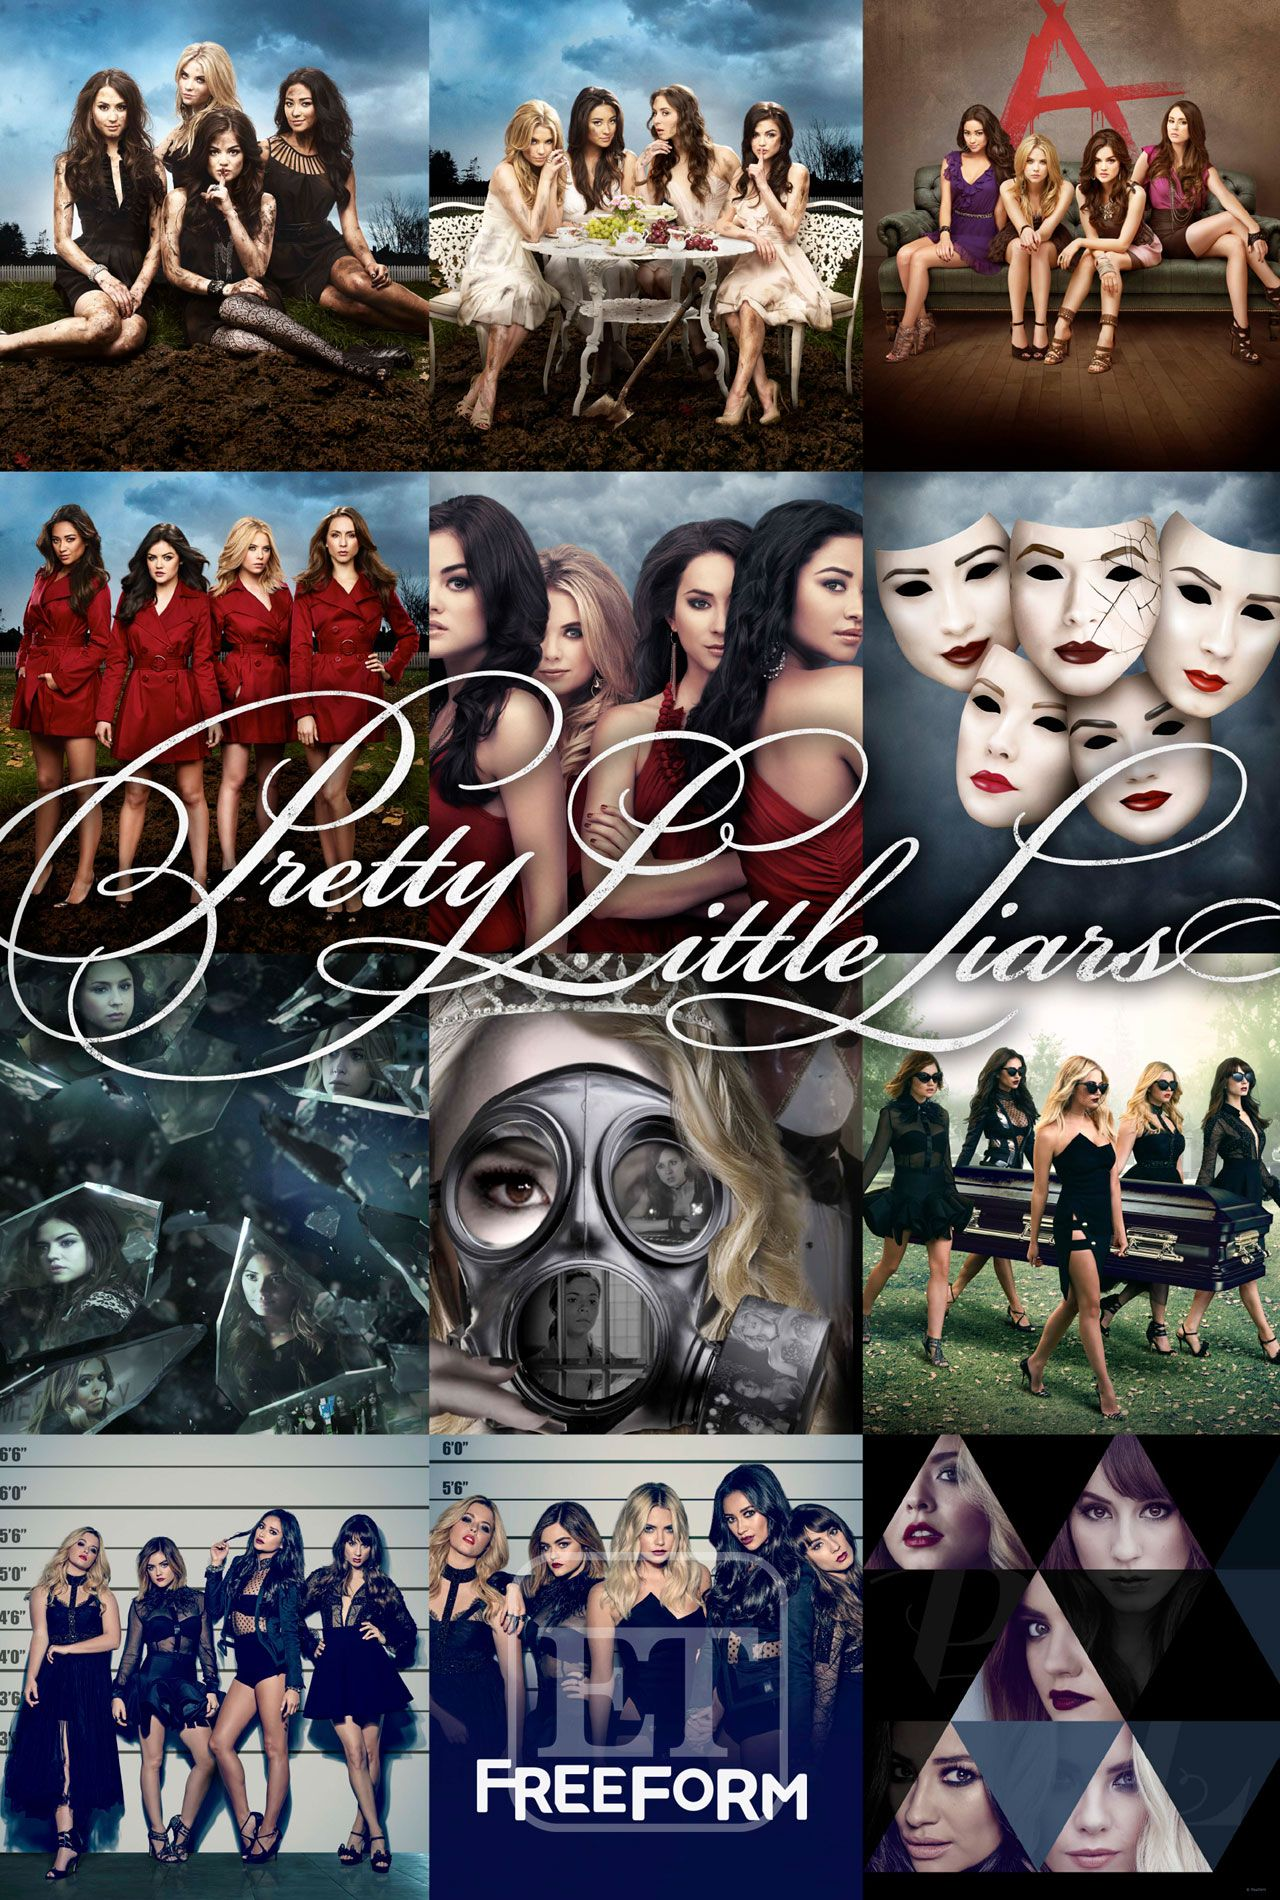 EXCLUSIVE: The 'Pretty Little Liars' Will Give You Chills in Seductive Final Poster -- And Did They Drop a Ser